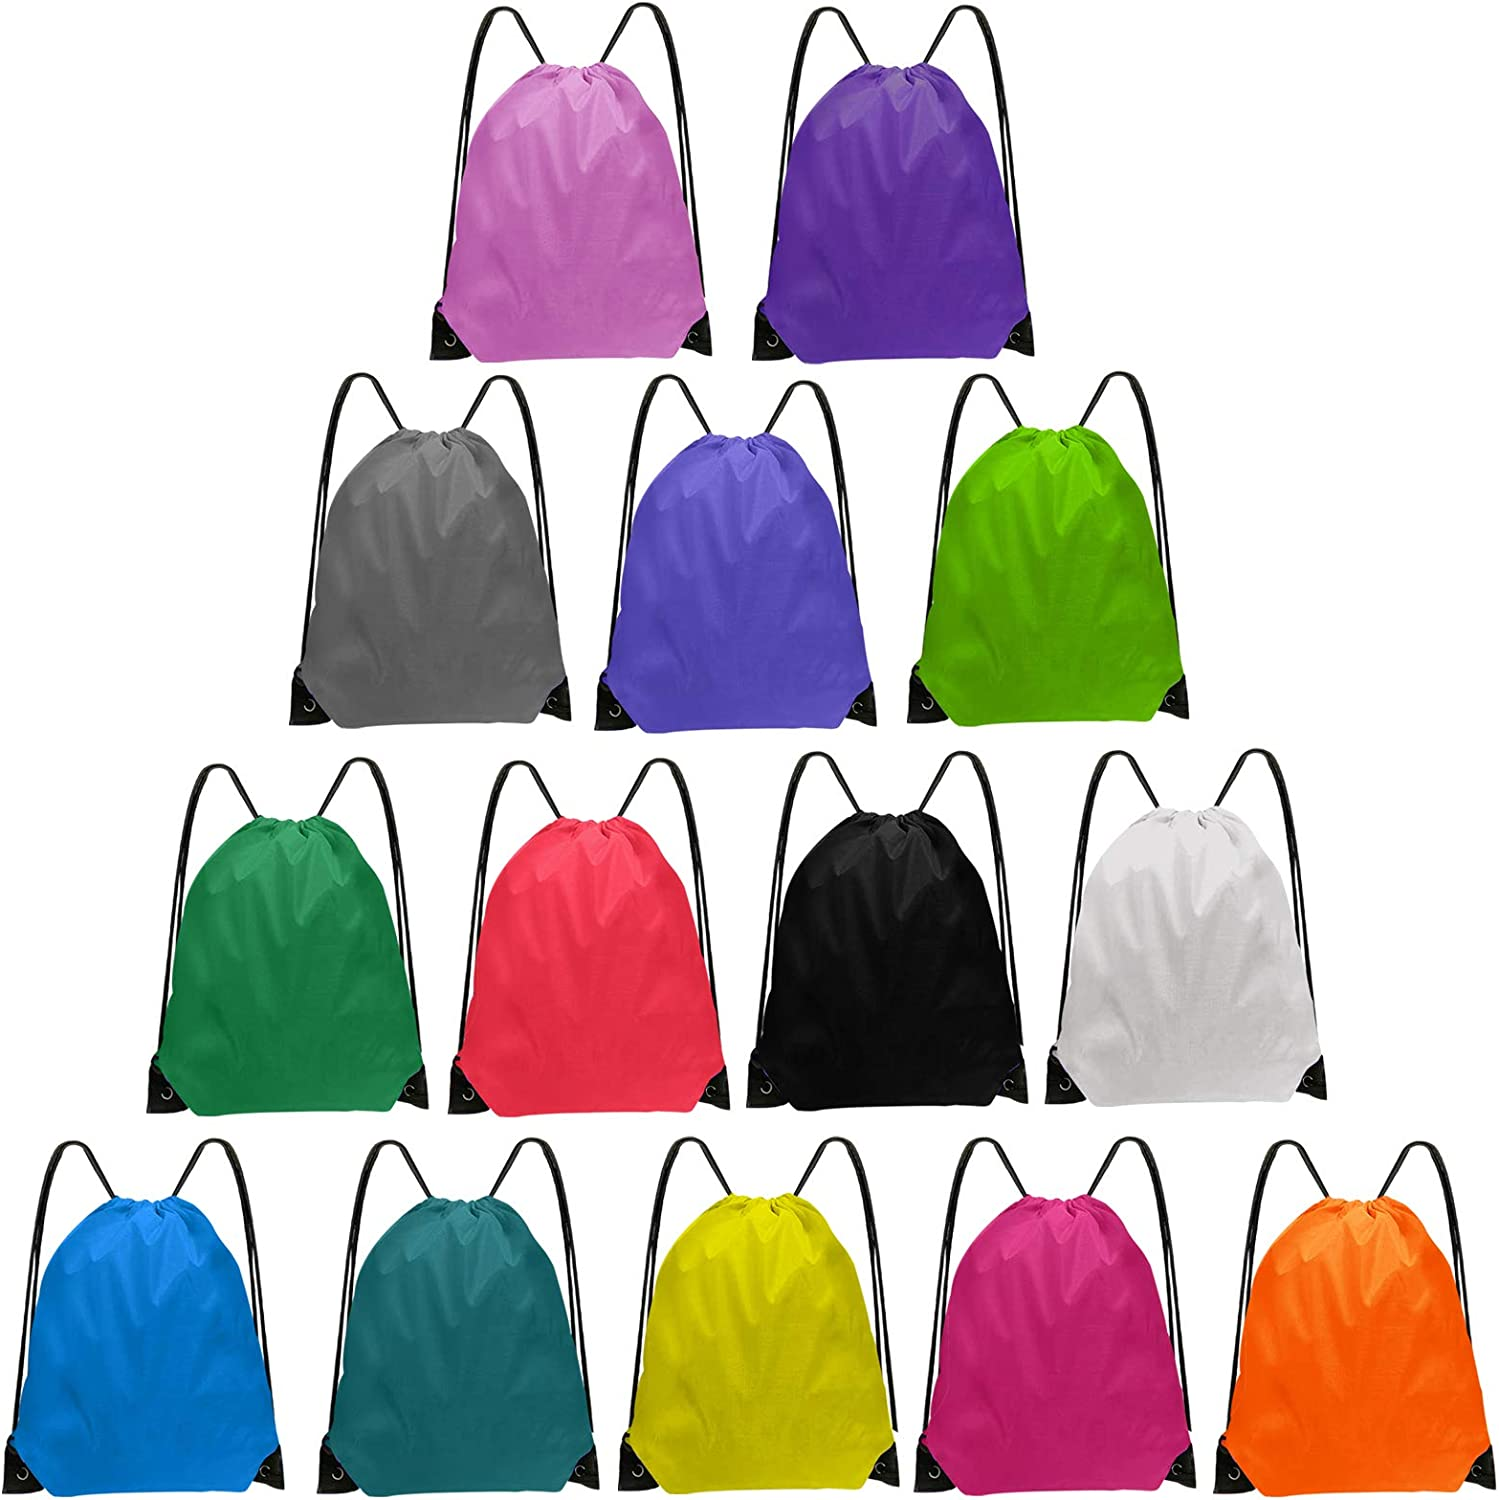 Pyramid of drawstring bags in different colors on white background